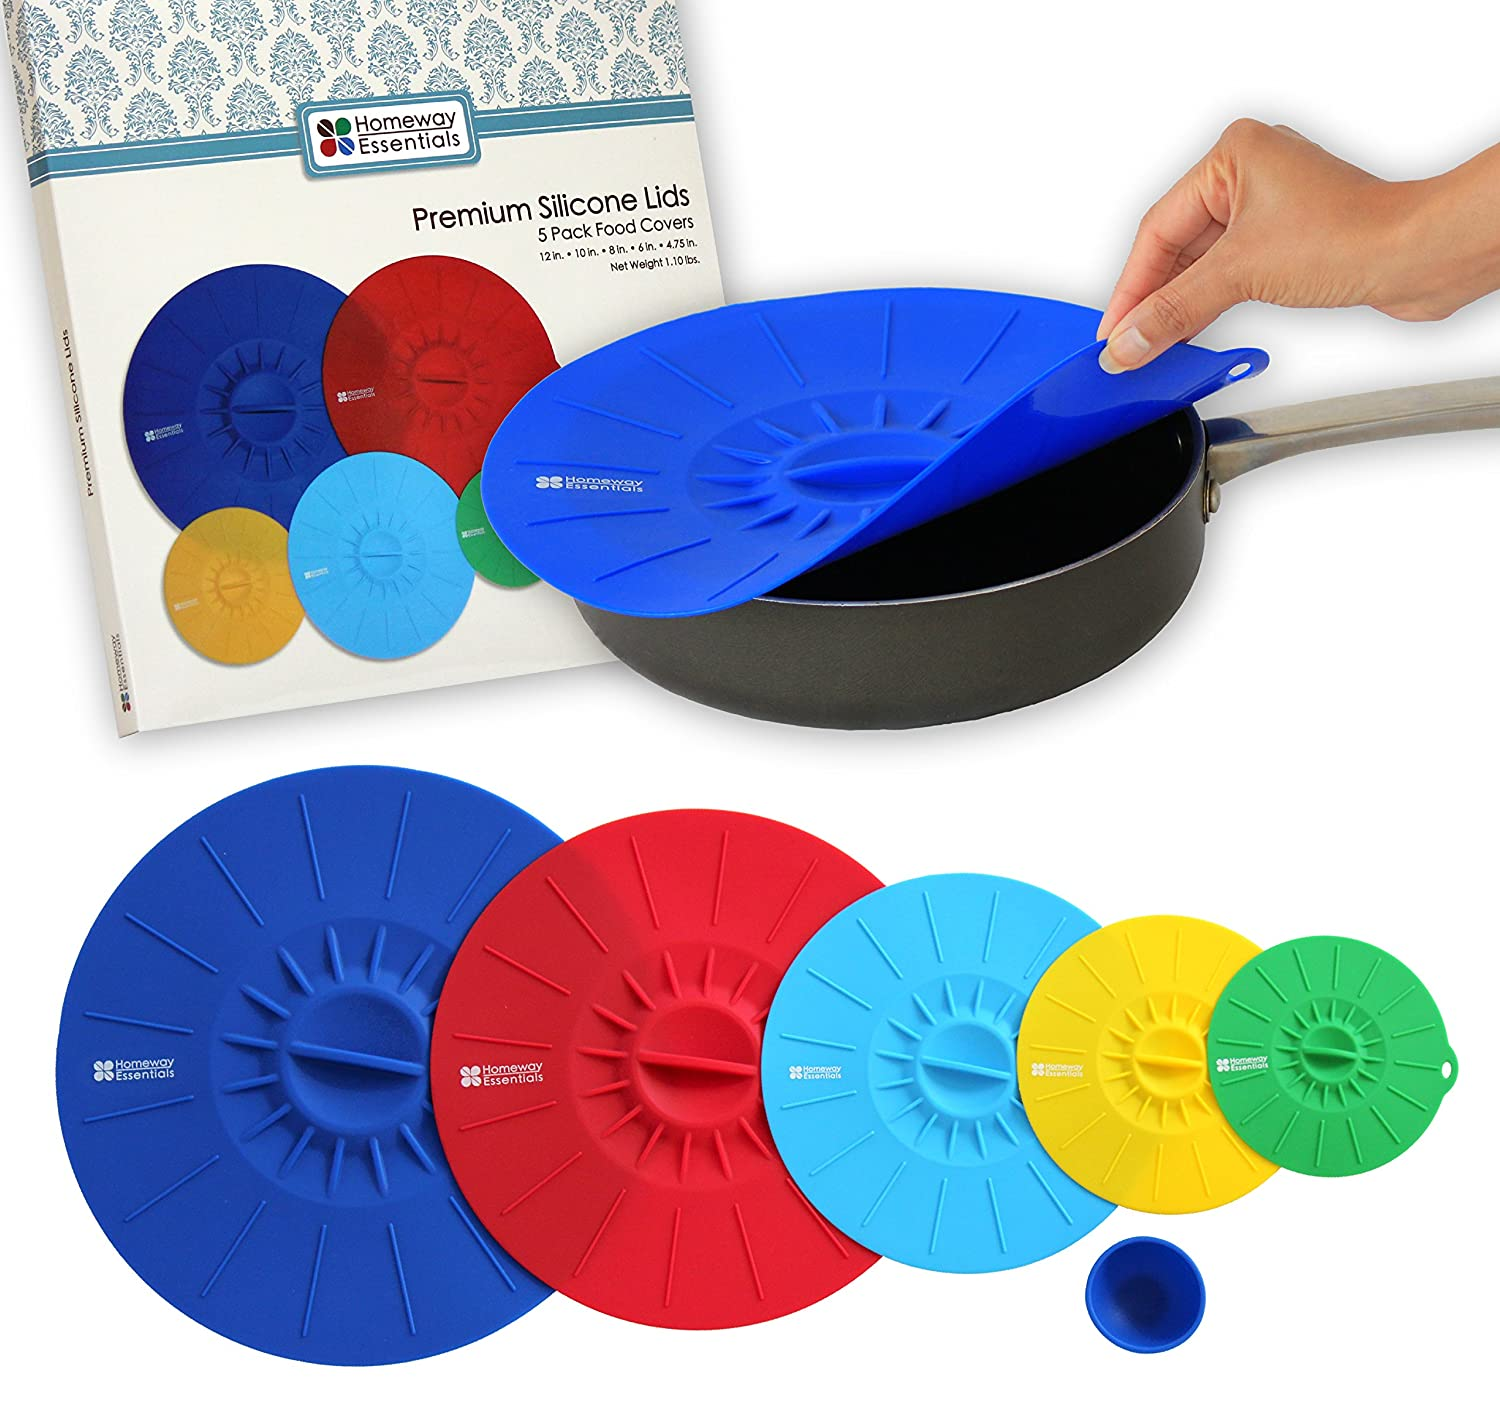 Amazon.com: Silicone Lids - Microwave Covers, Food Covers, Bowl ...